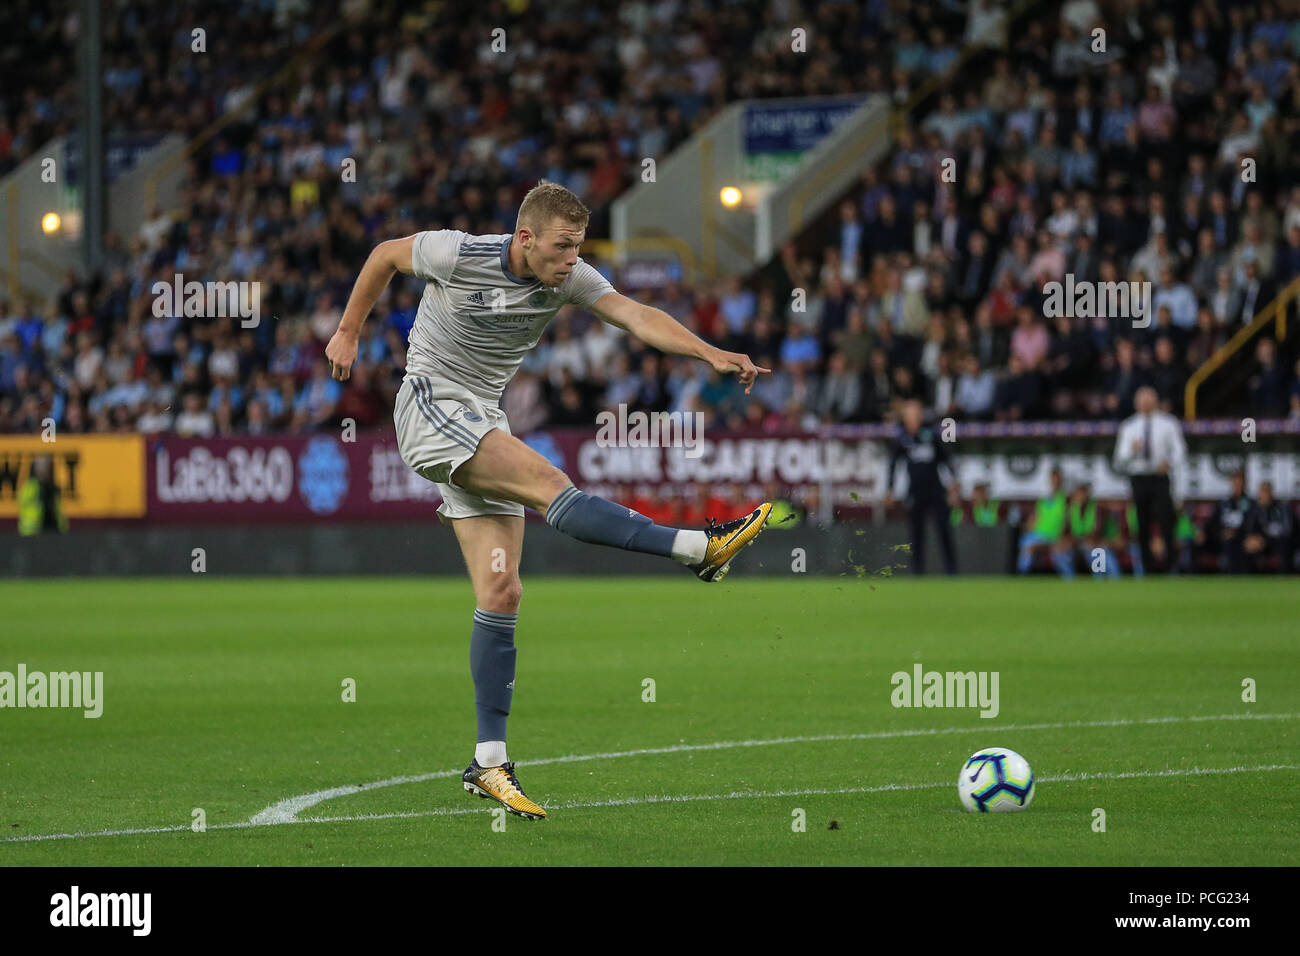 Turf Moor, Burnley, UK. 2nd August 2018, Turf Moor, Burnley, England; UAFA Europa League Qualifying Second Round Burnley v Aberdeen; Sam Cosgrove of Aberdeen shoots on goal but miss hits the ball Credit: News Images /Alamy Live News - Stock Image